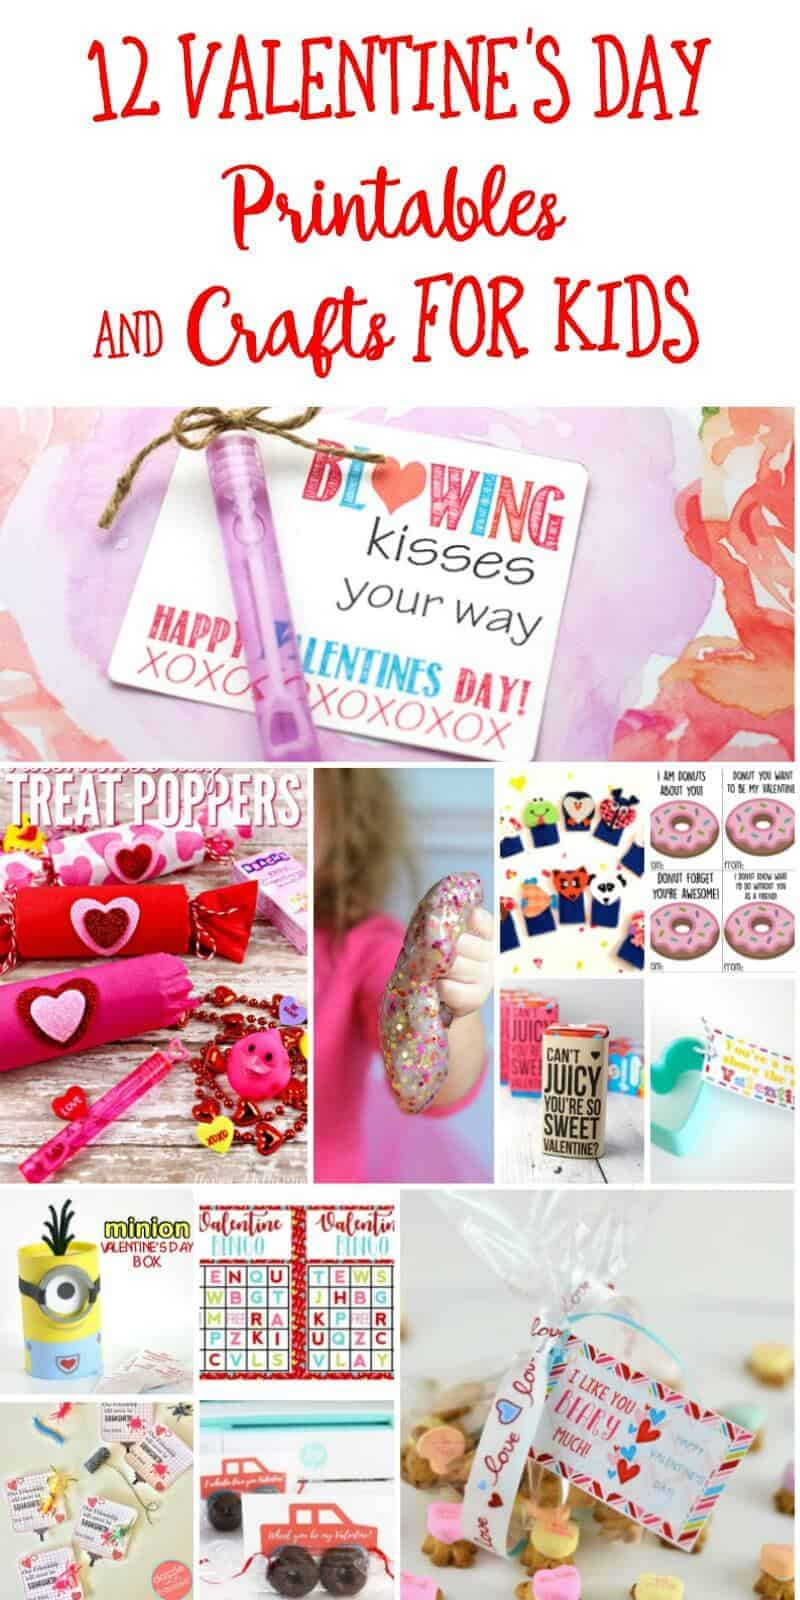 Collage of Valentine's Day printables and crafts for kids